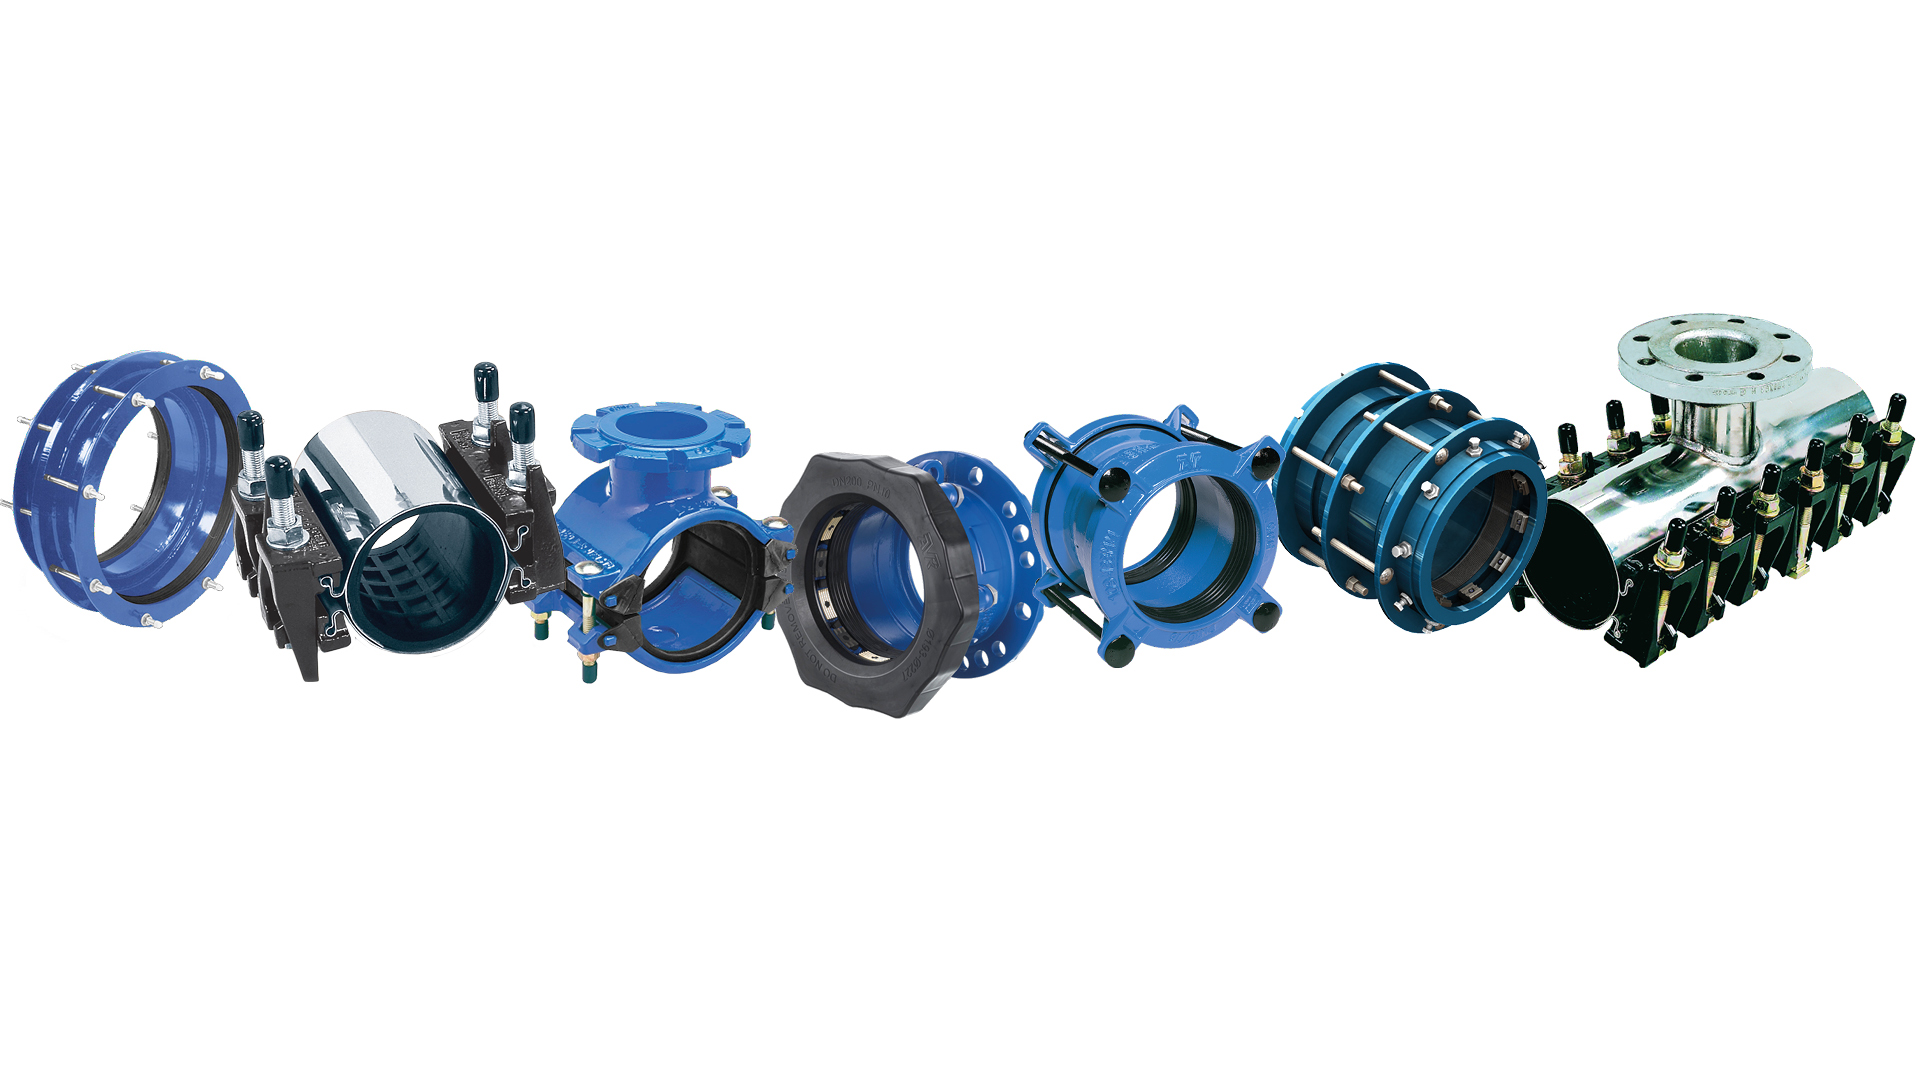 AVK Fittings and Pipe Repair Clamps from AVK Syddal